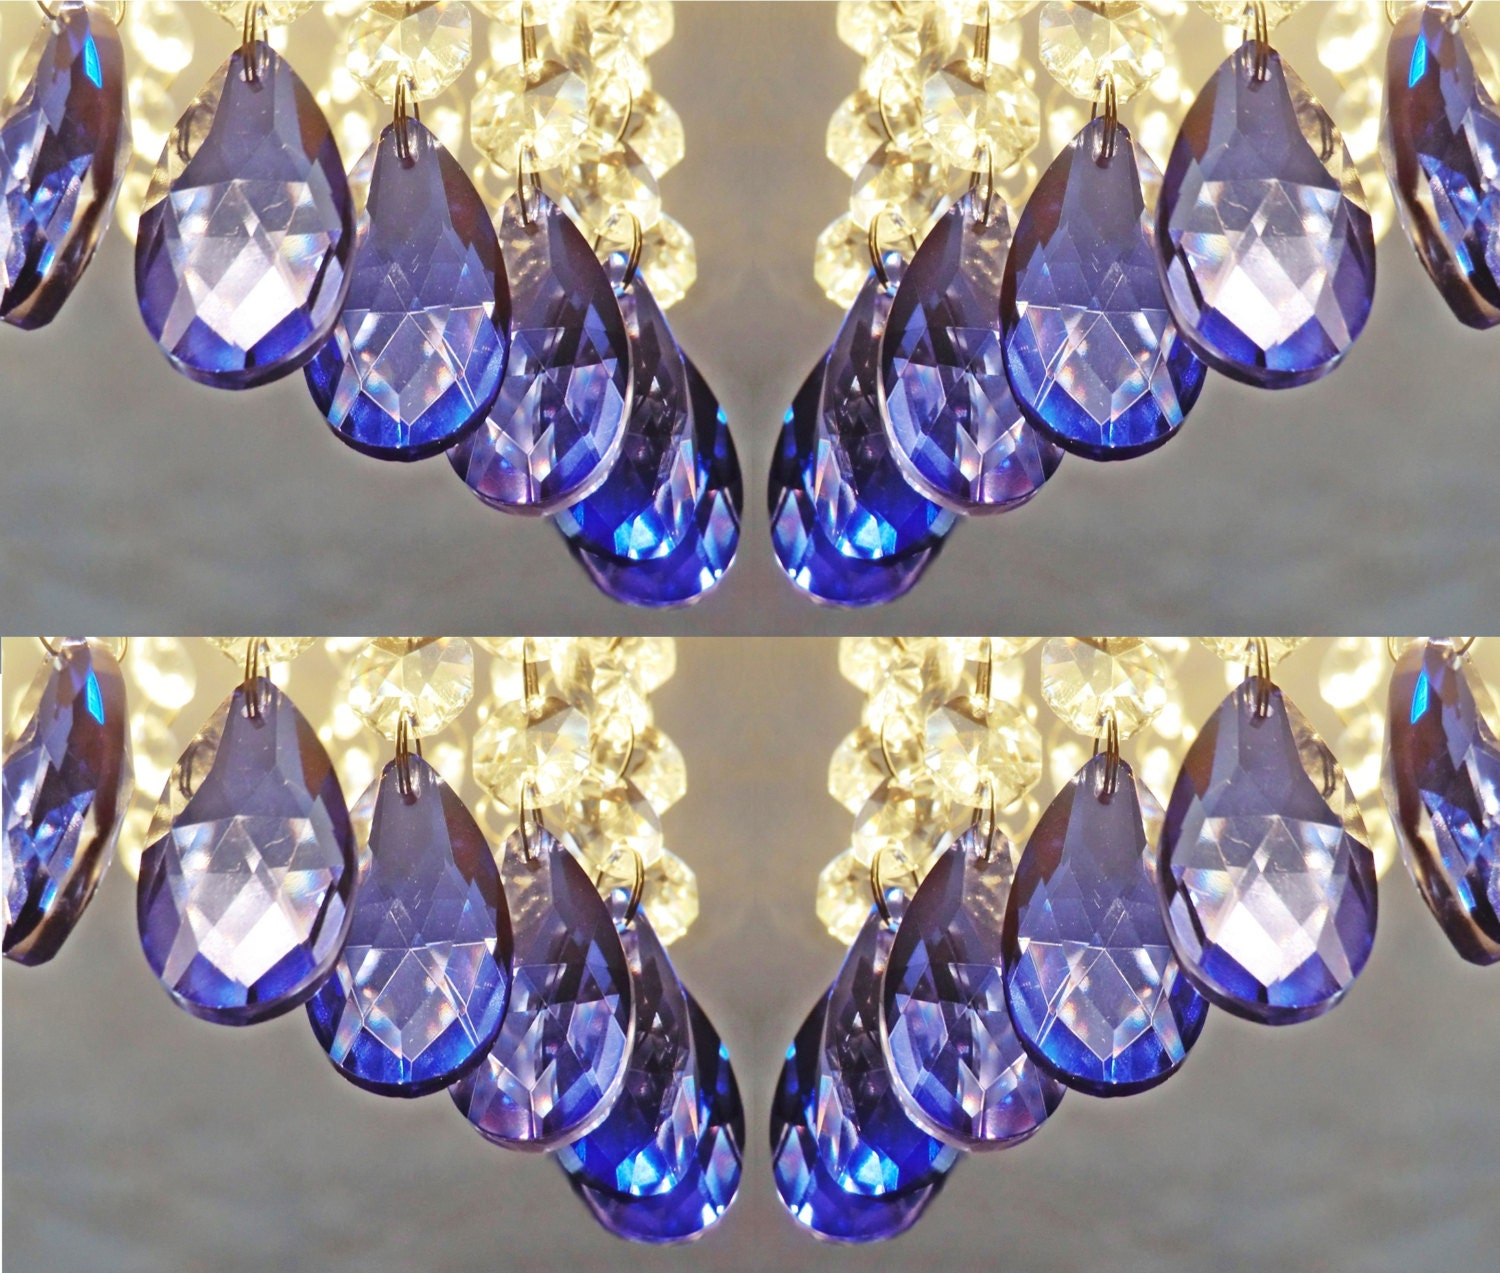 24 royal blue chandelier drops glass crystals shabby droplets chic 24 royal blue chandelier drops glass crystals shabby droplets chic prisms oval beads vintage art deco look christmas tree wedding decoration mozeypictures Image collections